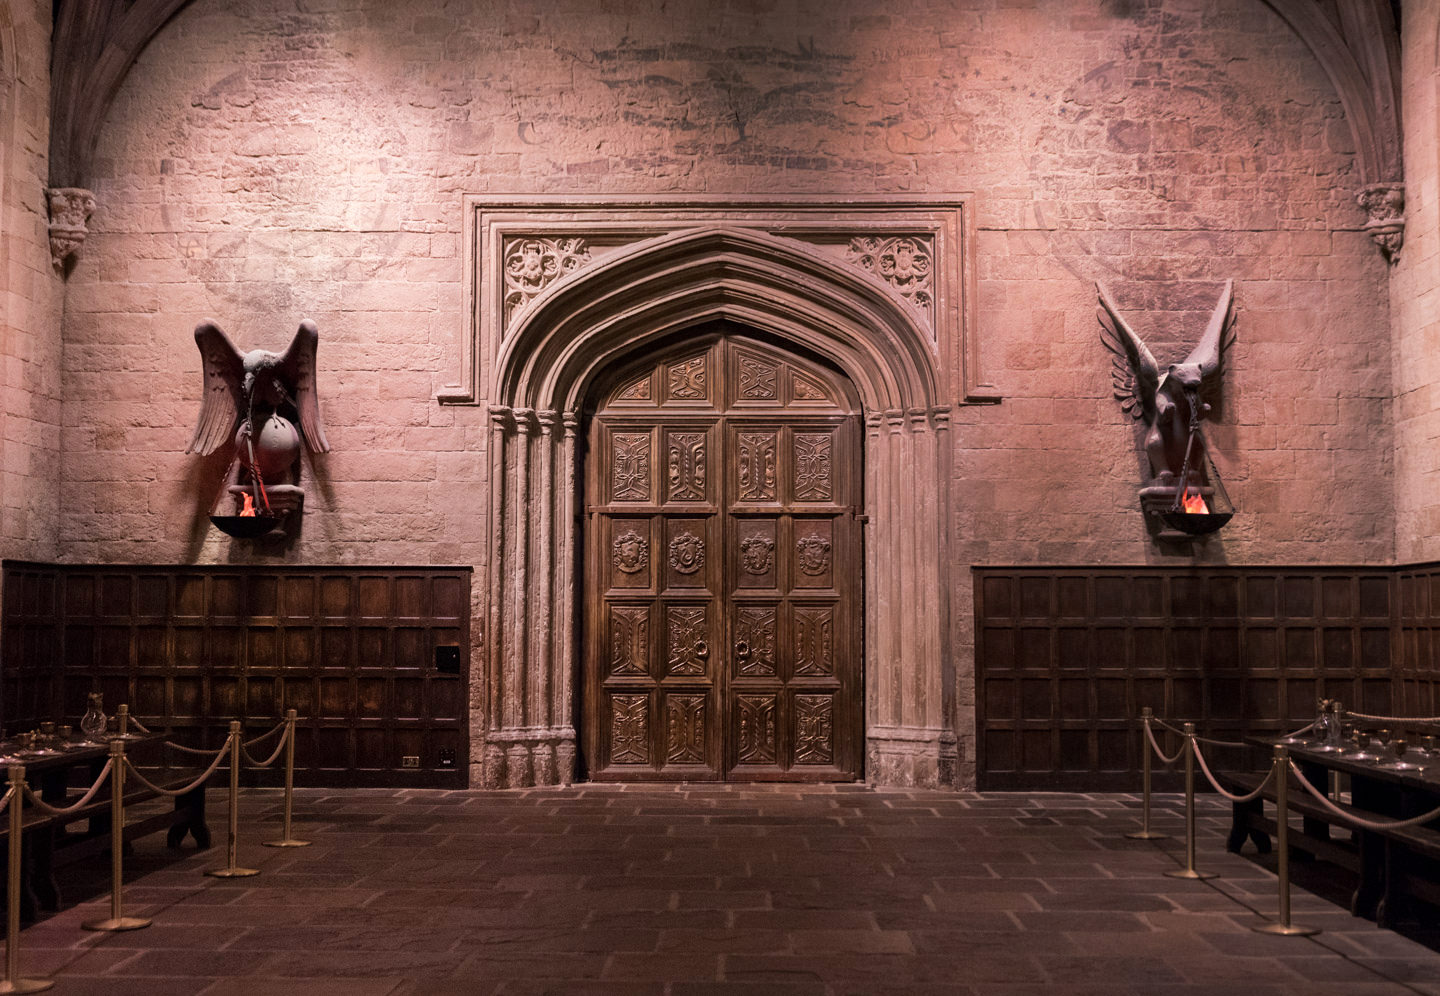 Blog-Mode-And-The-City-Lifestyle-Visite-Studios-Harry-Potter-Londres-6